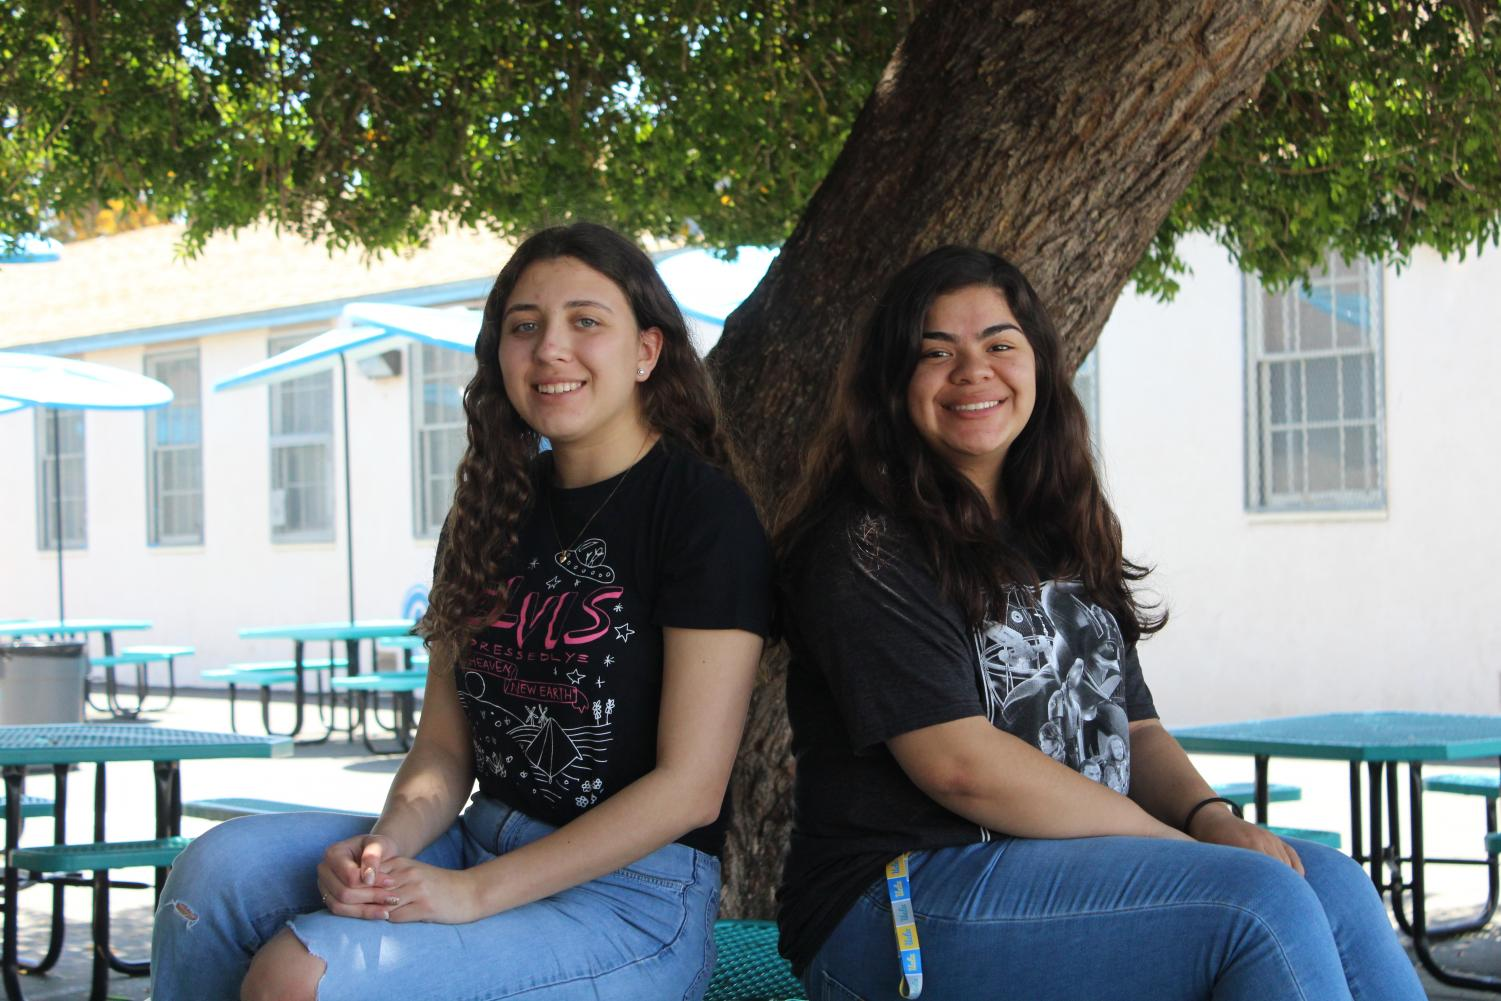 Print Editor-in-Chief Cristina Jercan and Online Editor-in-Chief Jessica Salguero conclude their final year on staff after a previous two years.